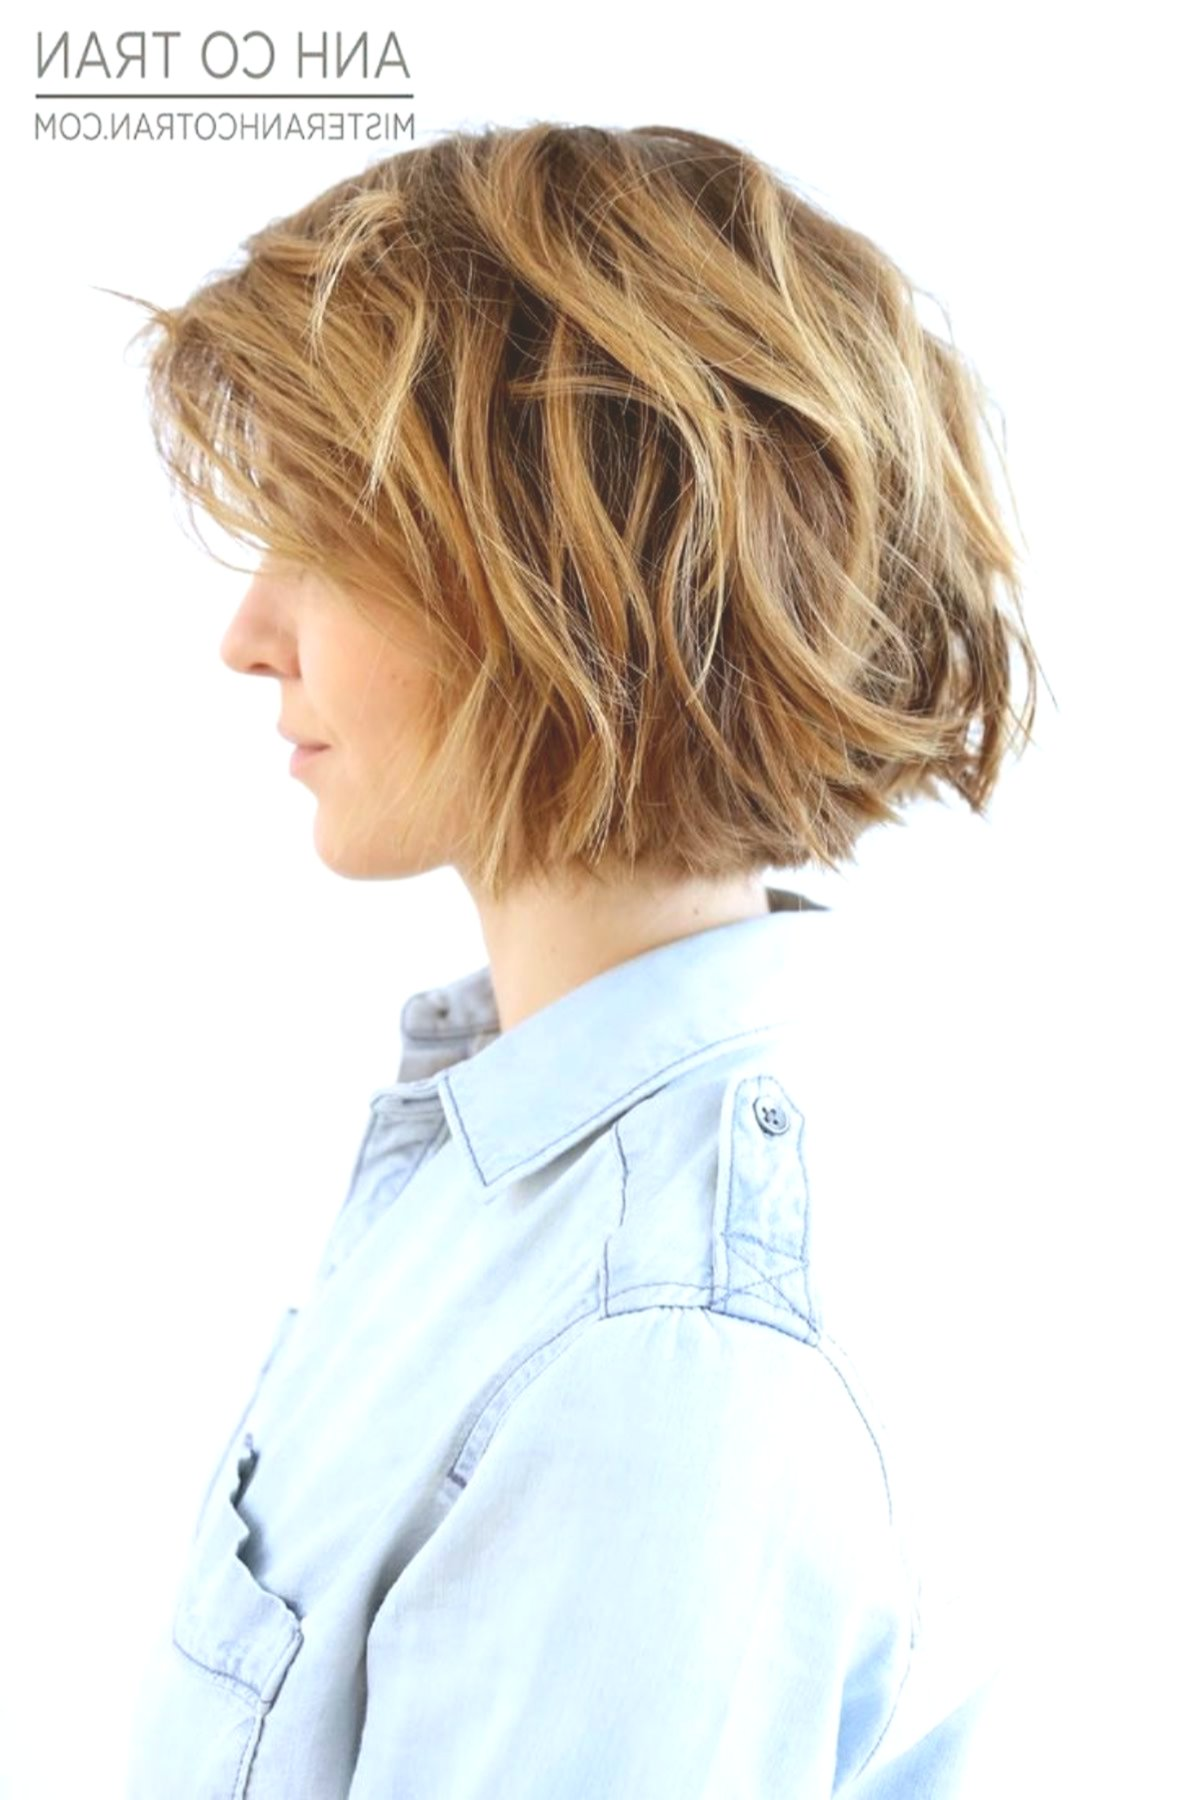 beautiful new hairstyle woman collection-Excellent New hairstyle woman layout